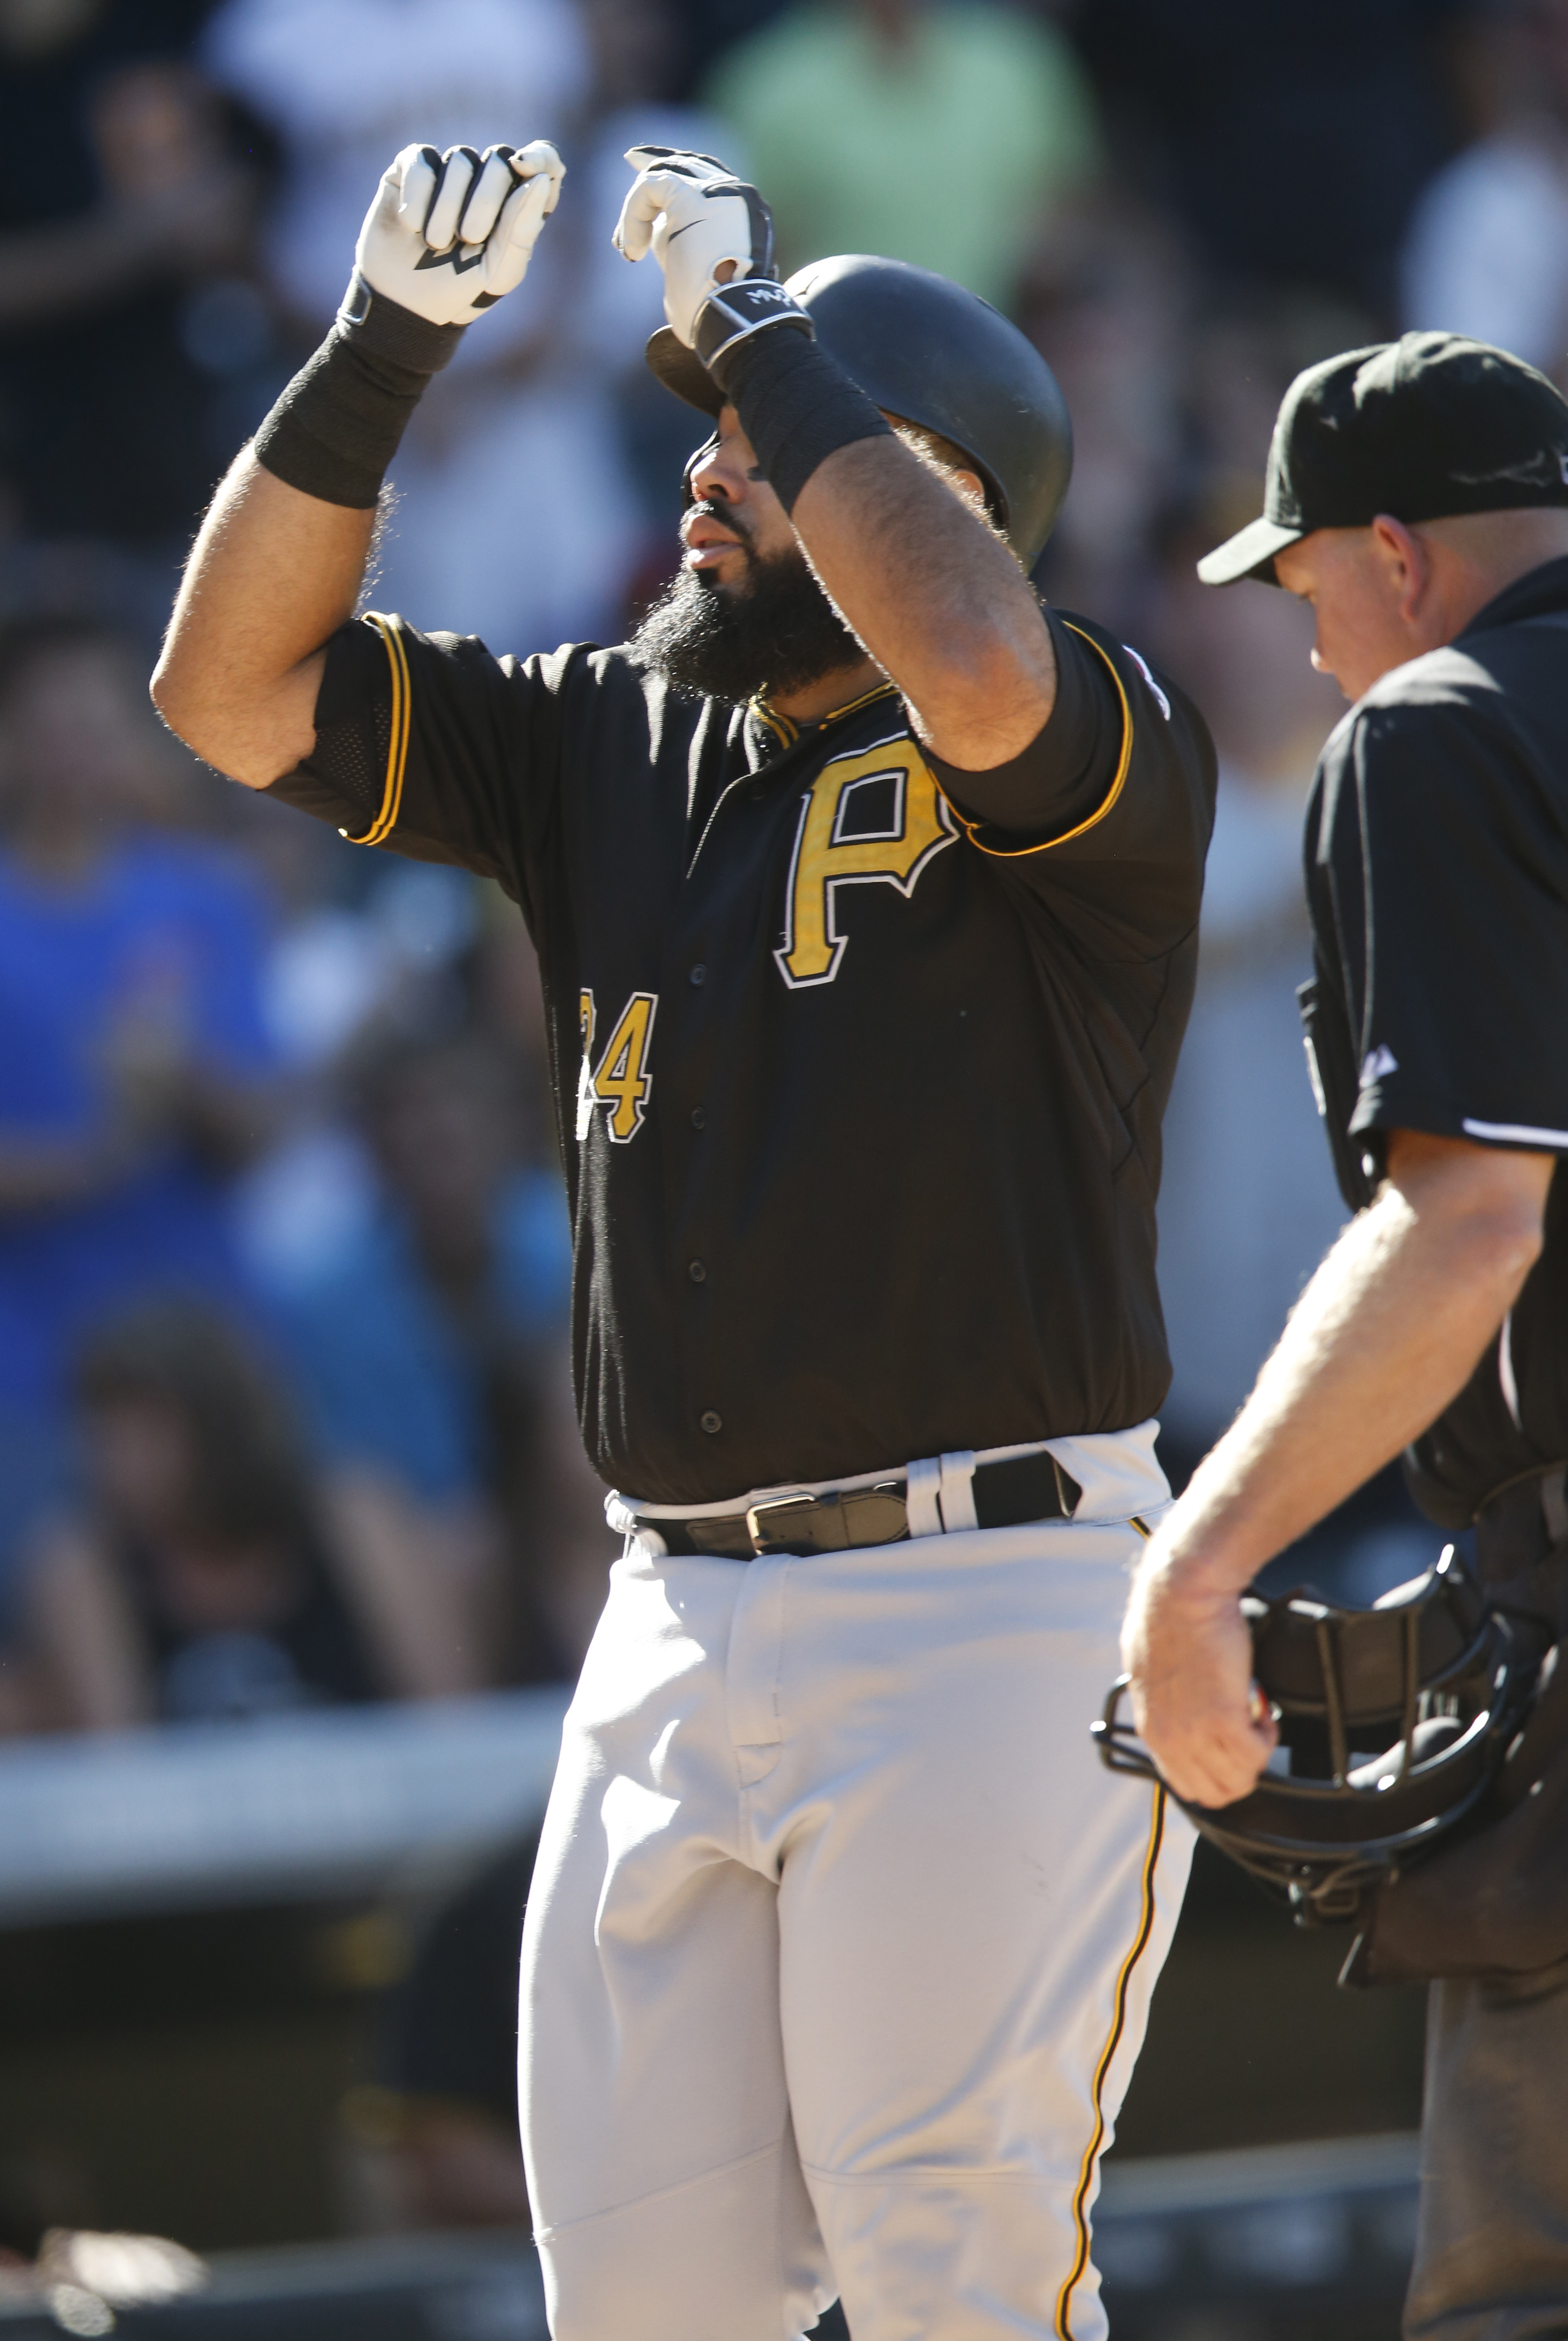 Pittsburgh Pirates' Pedro Alvarez celebrates as he crosses home plate after hitting a three-run home run off Colorado Rockies relief pitcher Jairo Diaz in the eighth inning of a baseball game Thursday, Sept. 24, 2015, in Denver. Pittsburgh won 5-4. (AP Ph